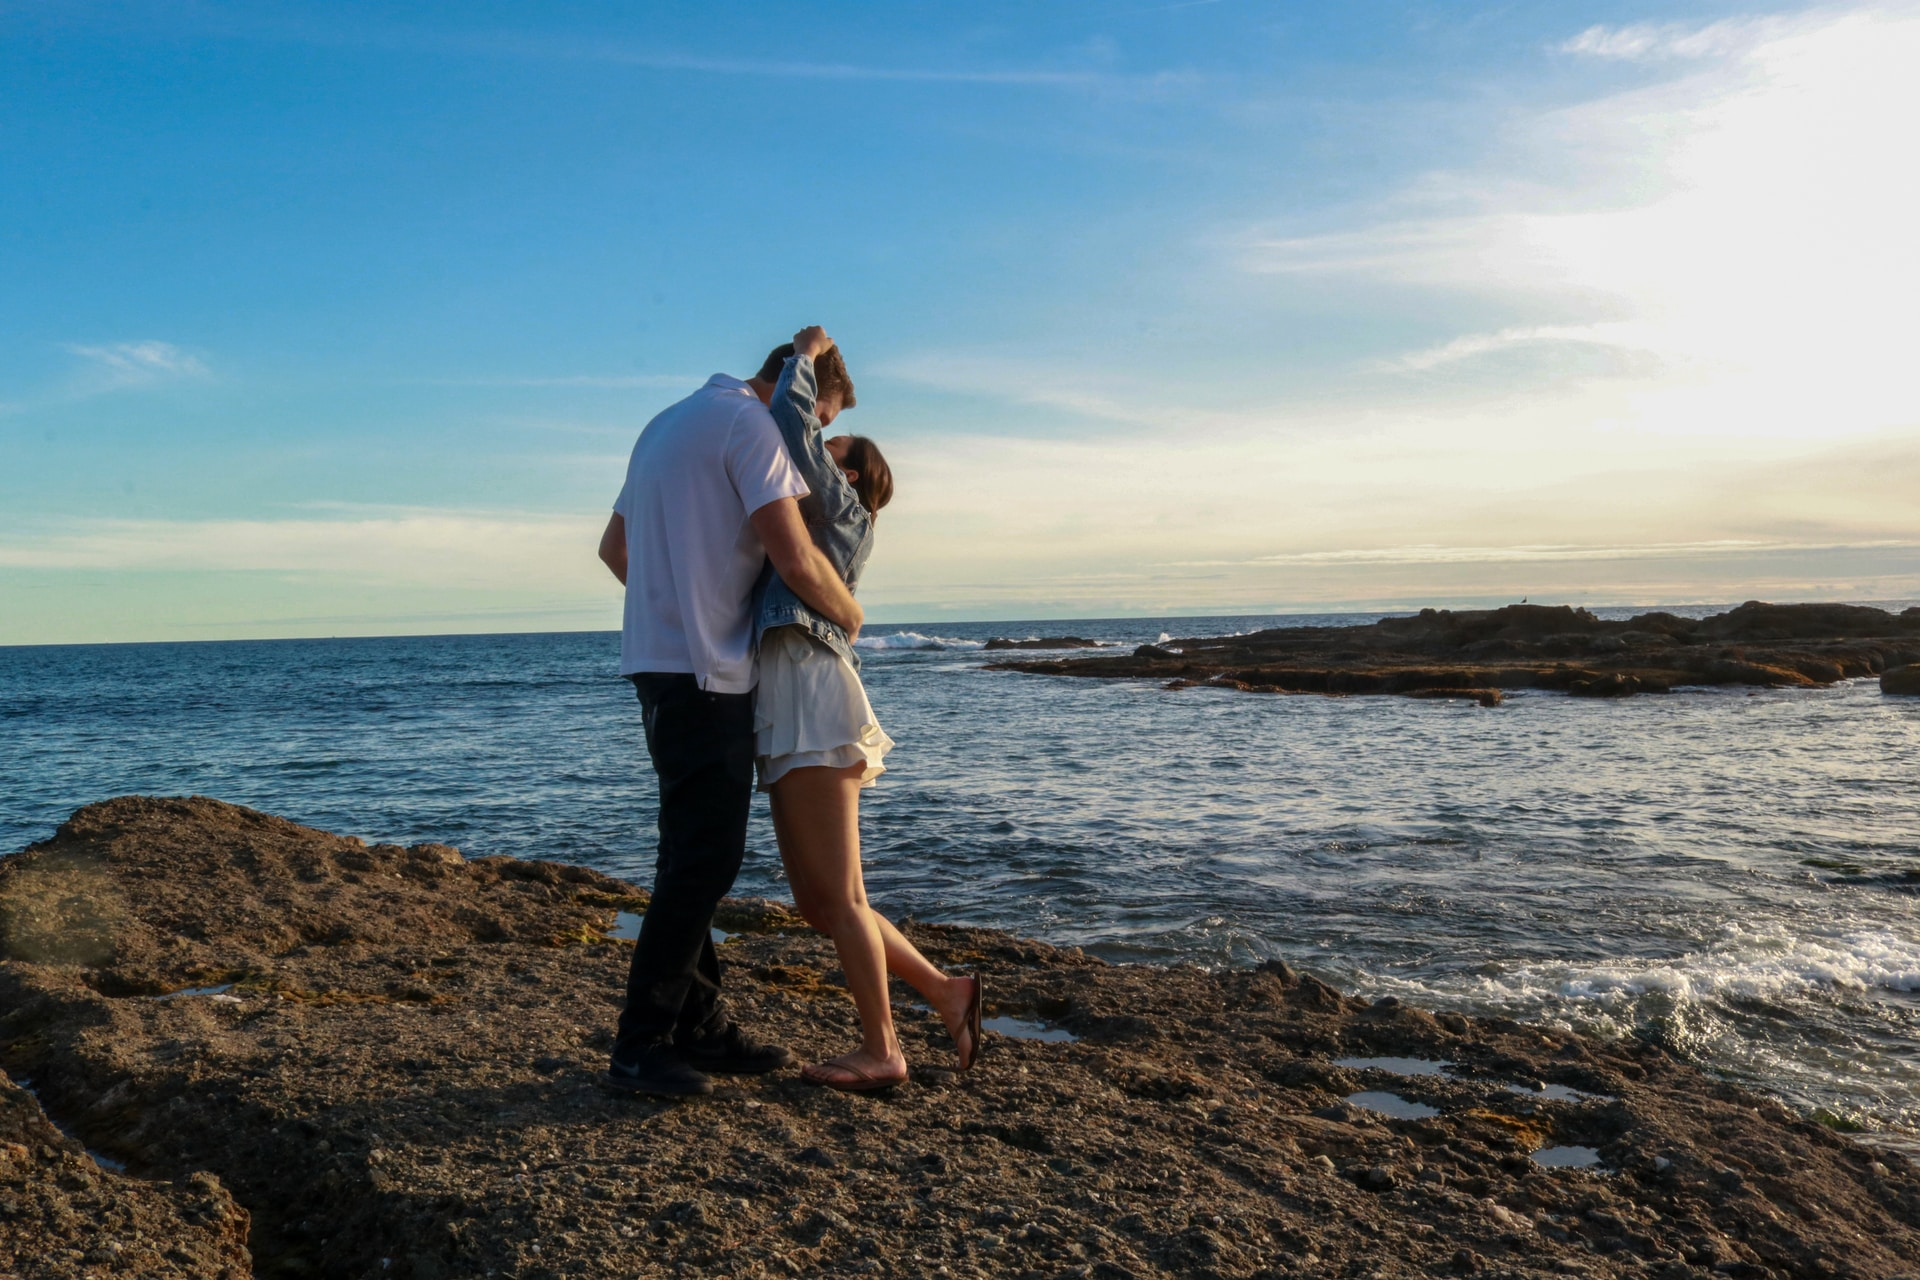 man and woman kissing on seashore during daytime